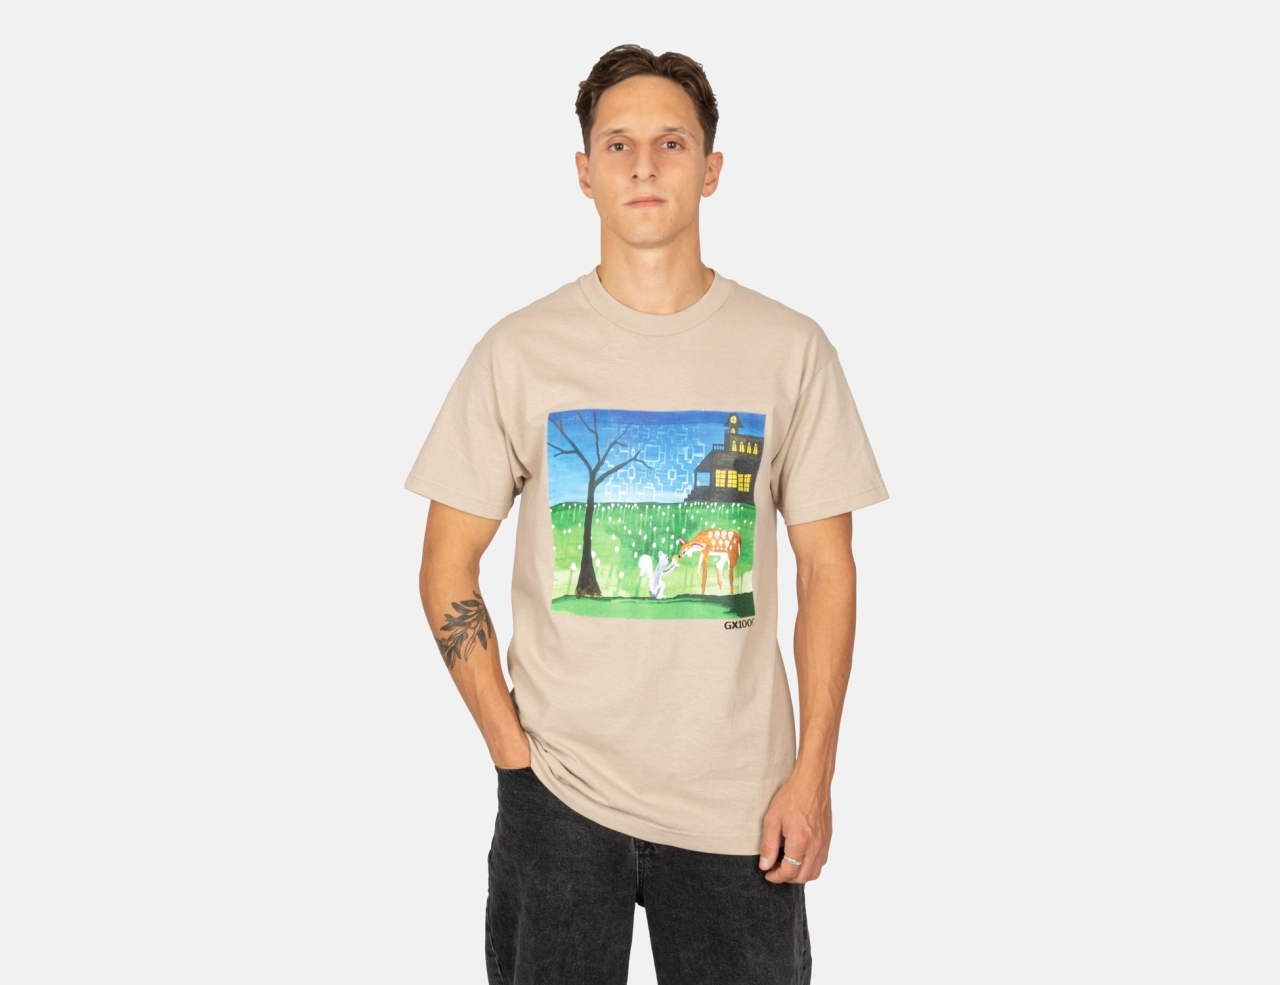 GX1000 Sharing With Friends T-Shirt - Sand